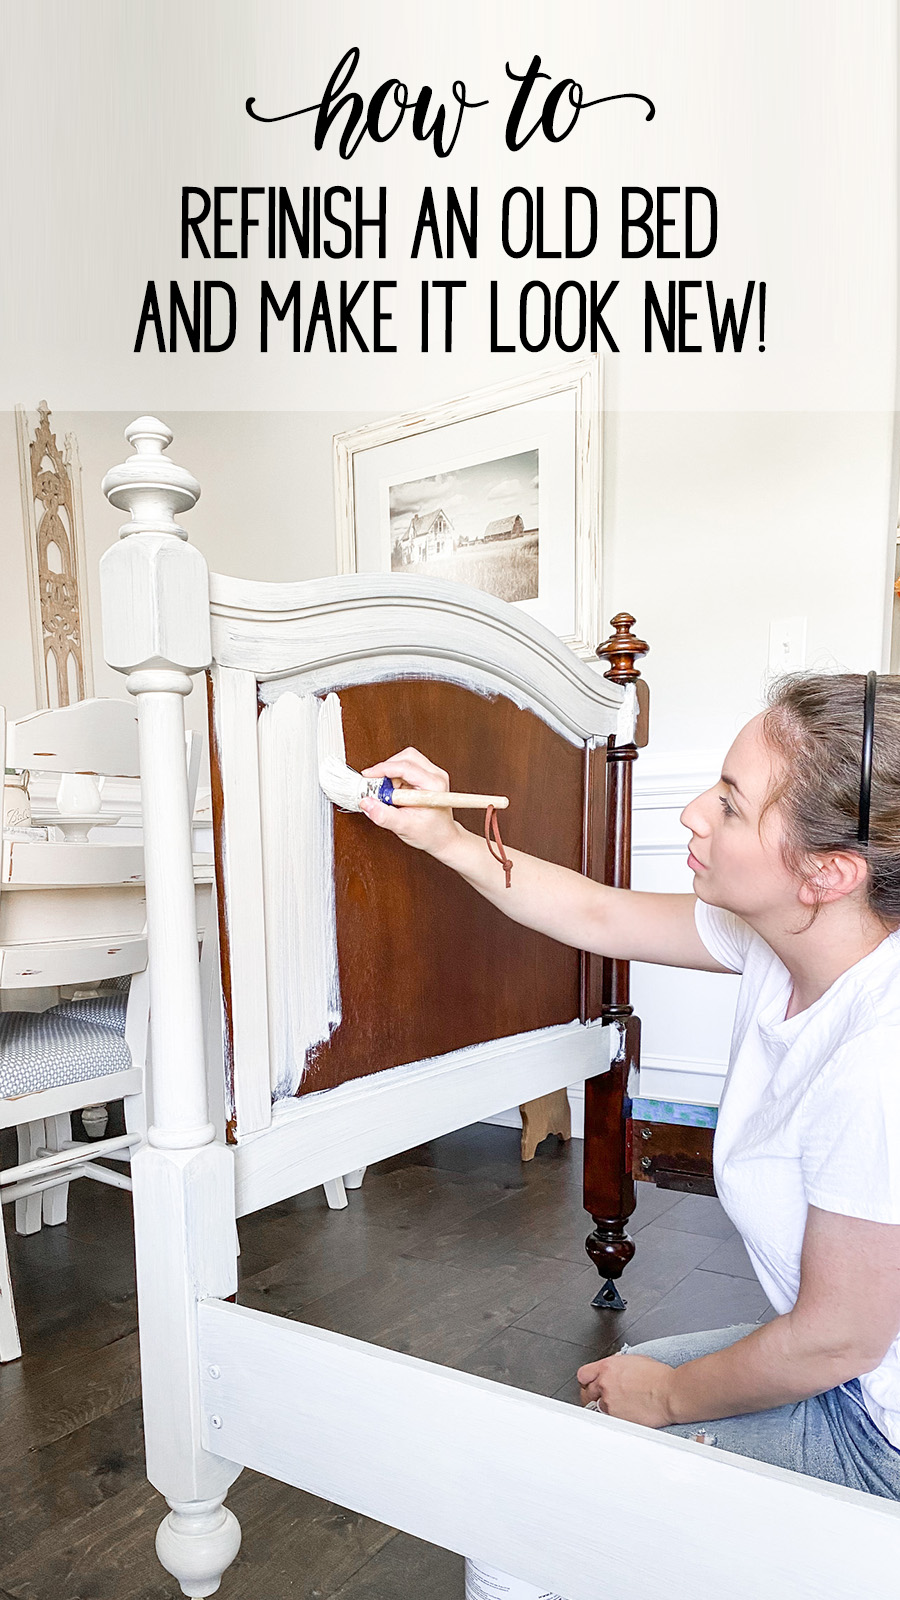 pinterest pin for how to refinish an old bed to make it look new